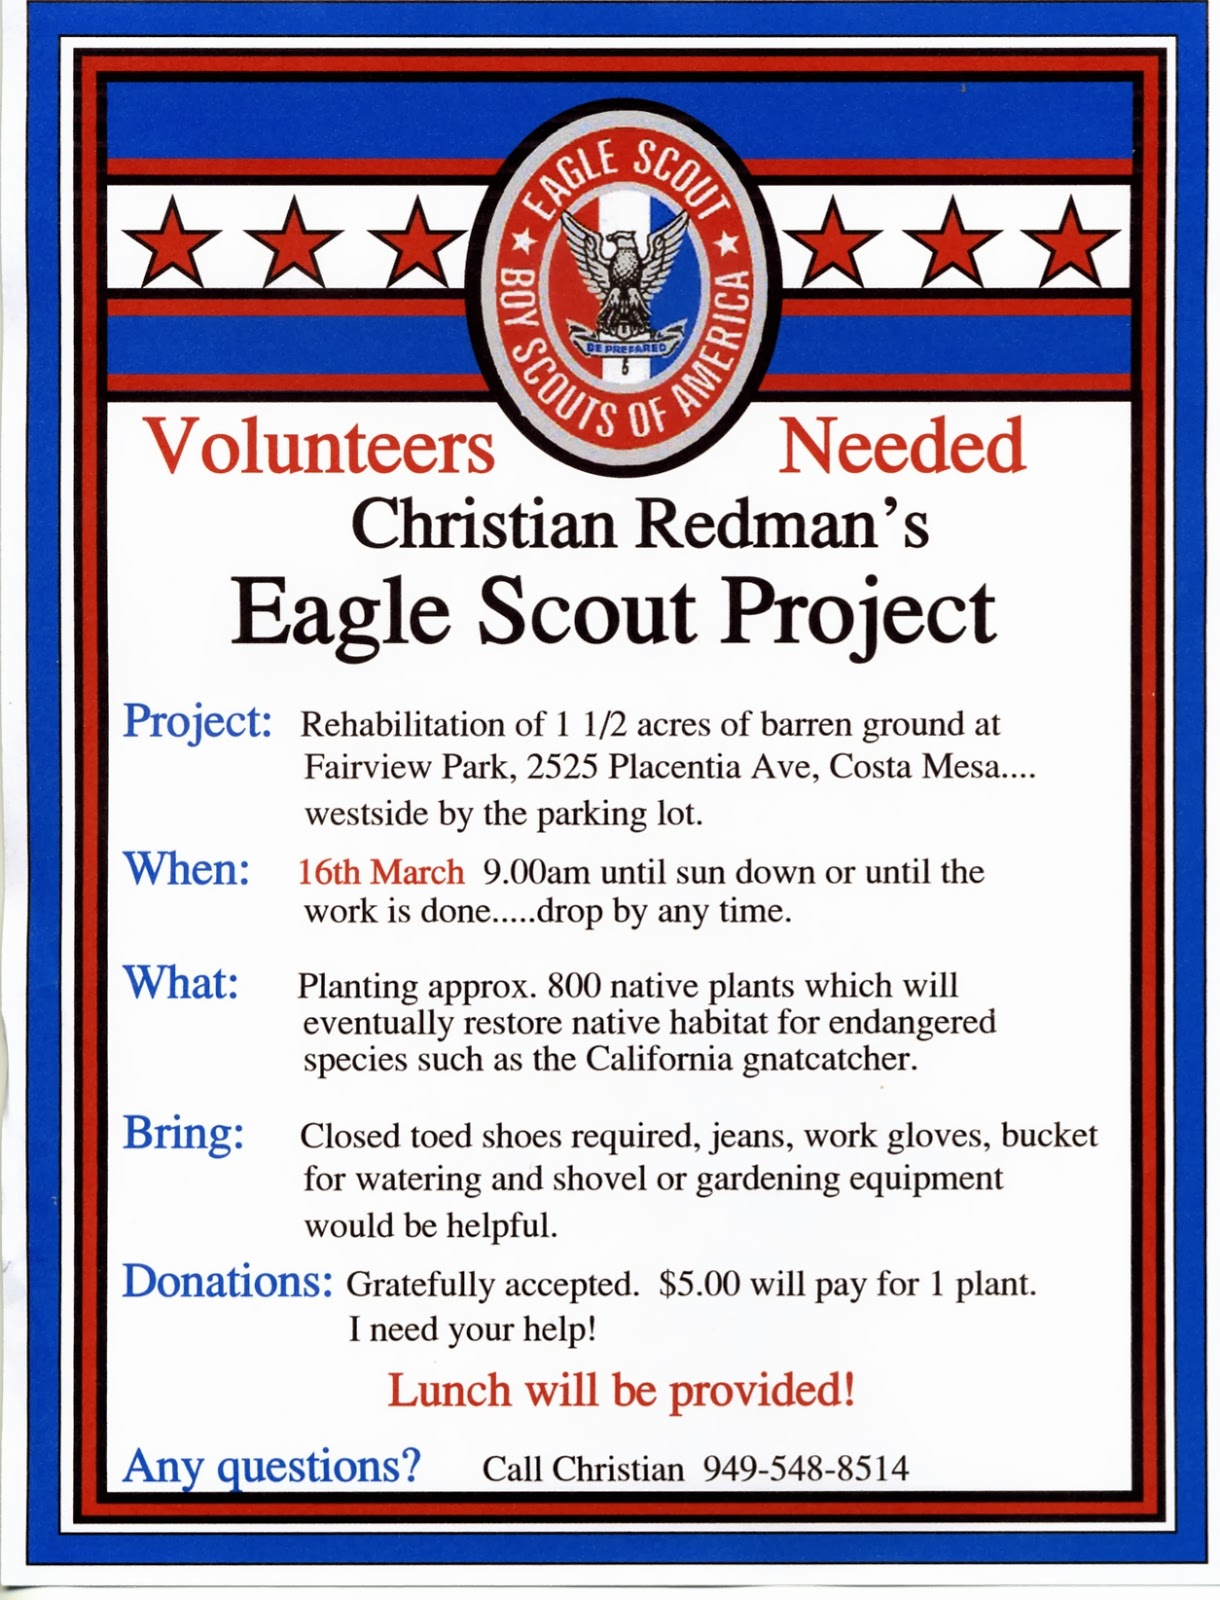 C.RedmanProjectFlyer012 Eagle Scout Project Donation Letter Template on court honor, congratulation cards, court honor invitation, recommendation letter, ceremony invitation, emblem printable, court honor program, project plaque, event program,